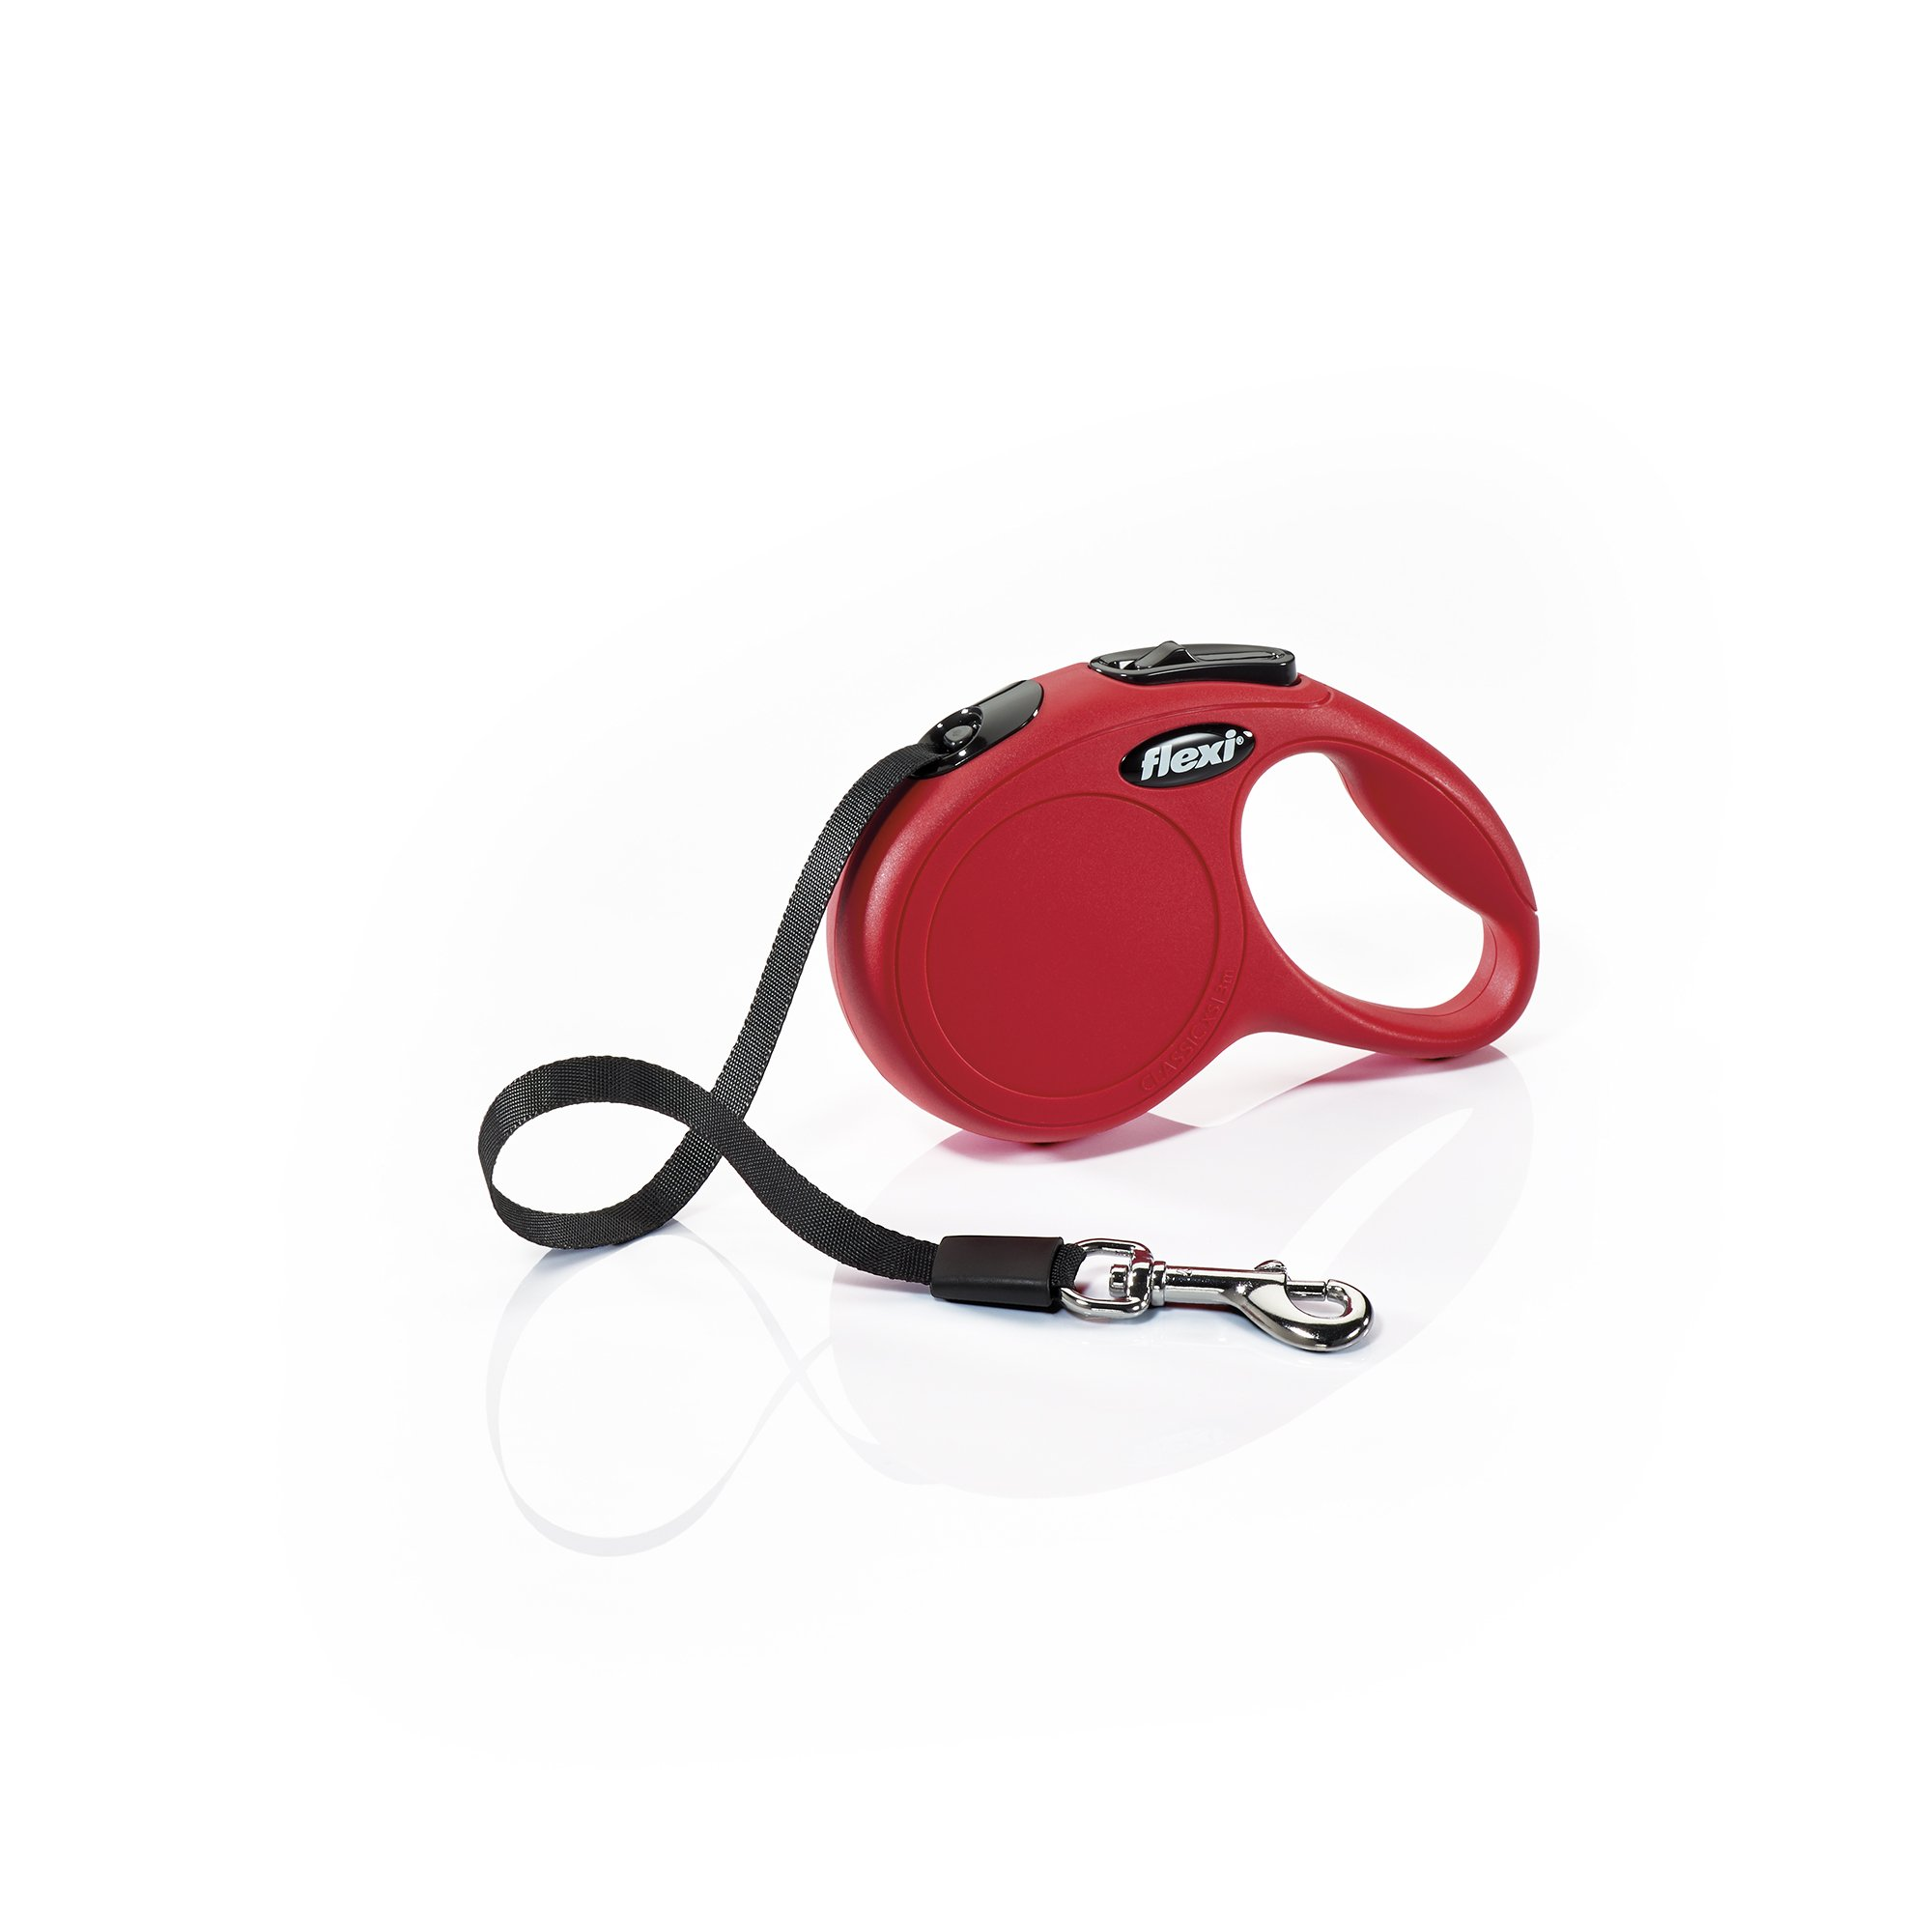 Flexi CL00T3.250.R New Classic Tape Retractable Leash, Red, X-Small/10'